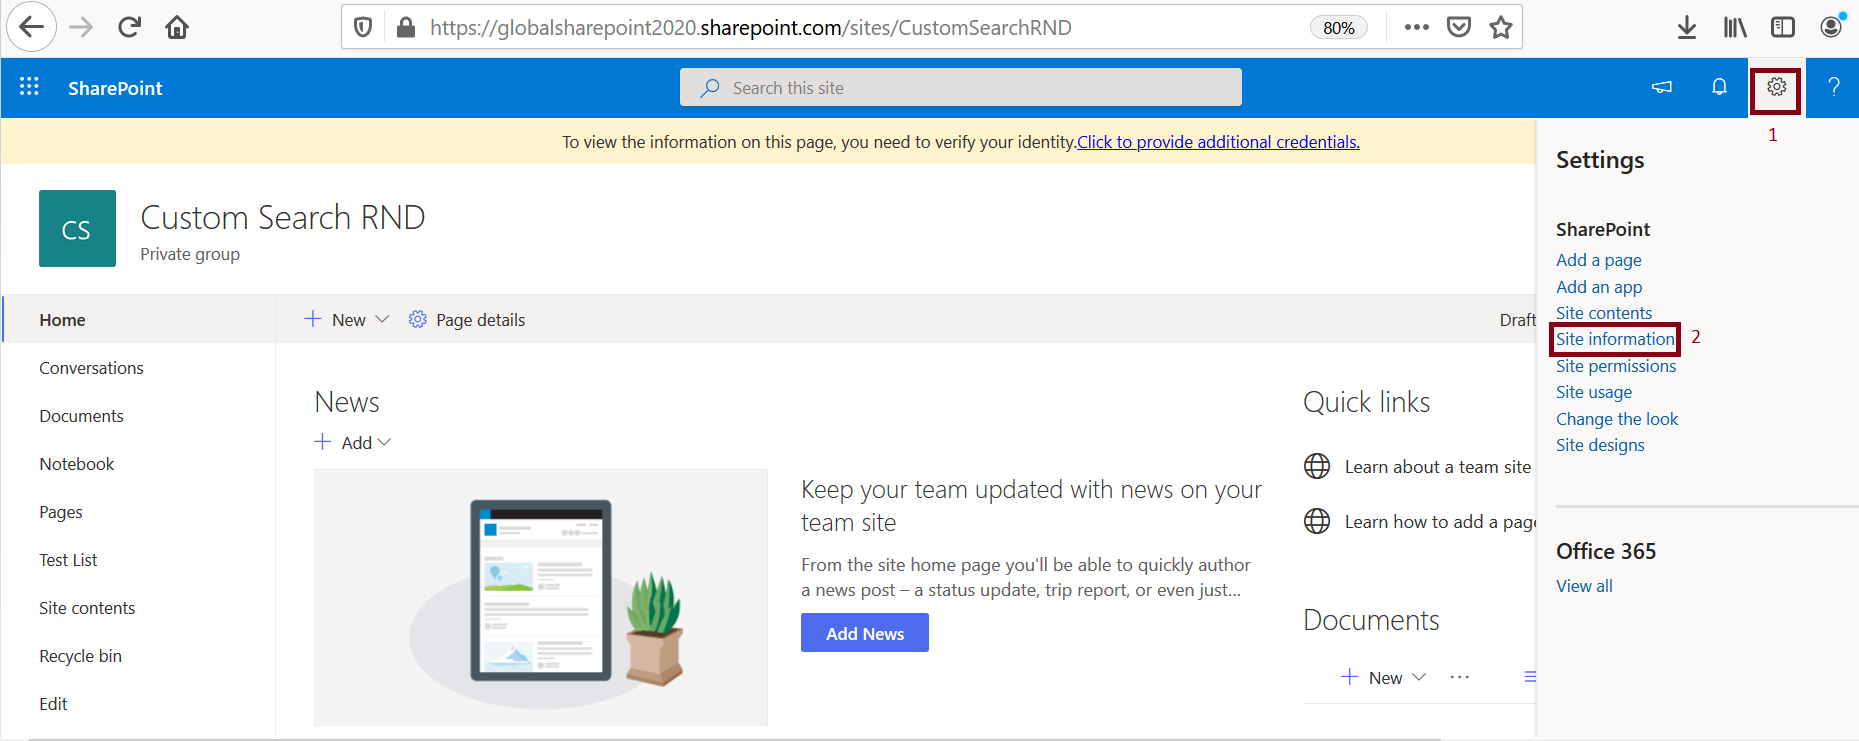 Site information from SharePoint site settings